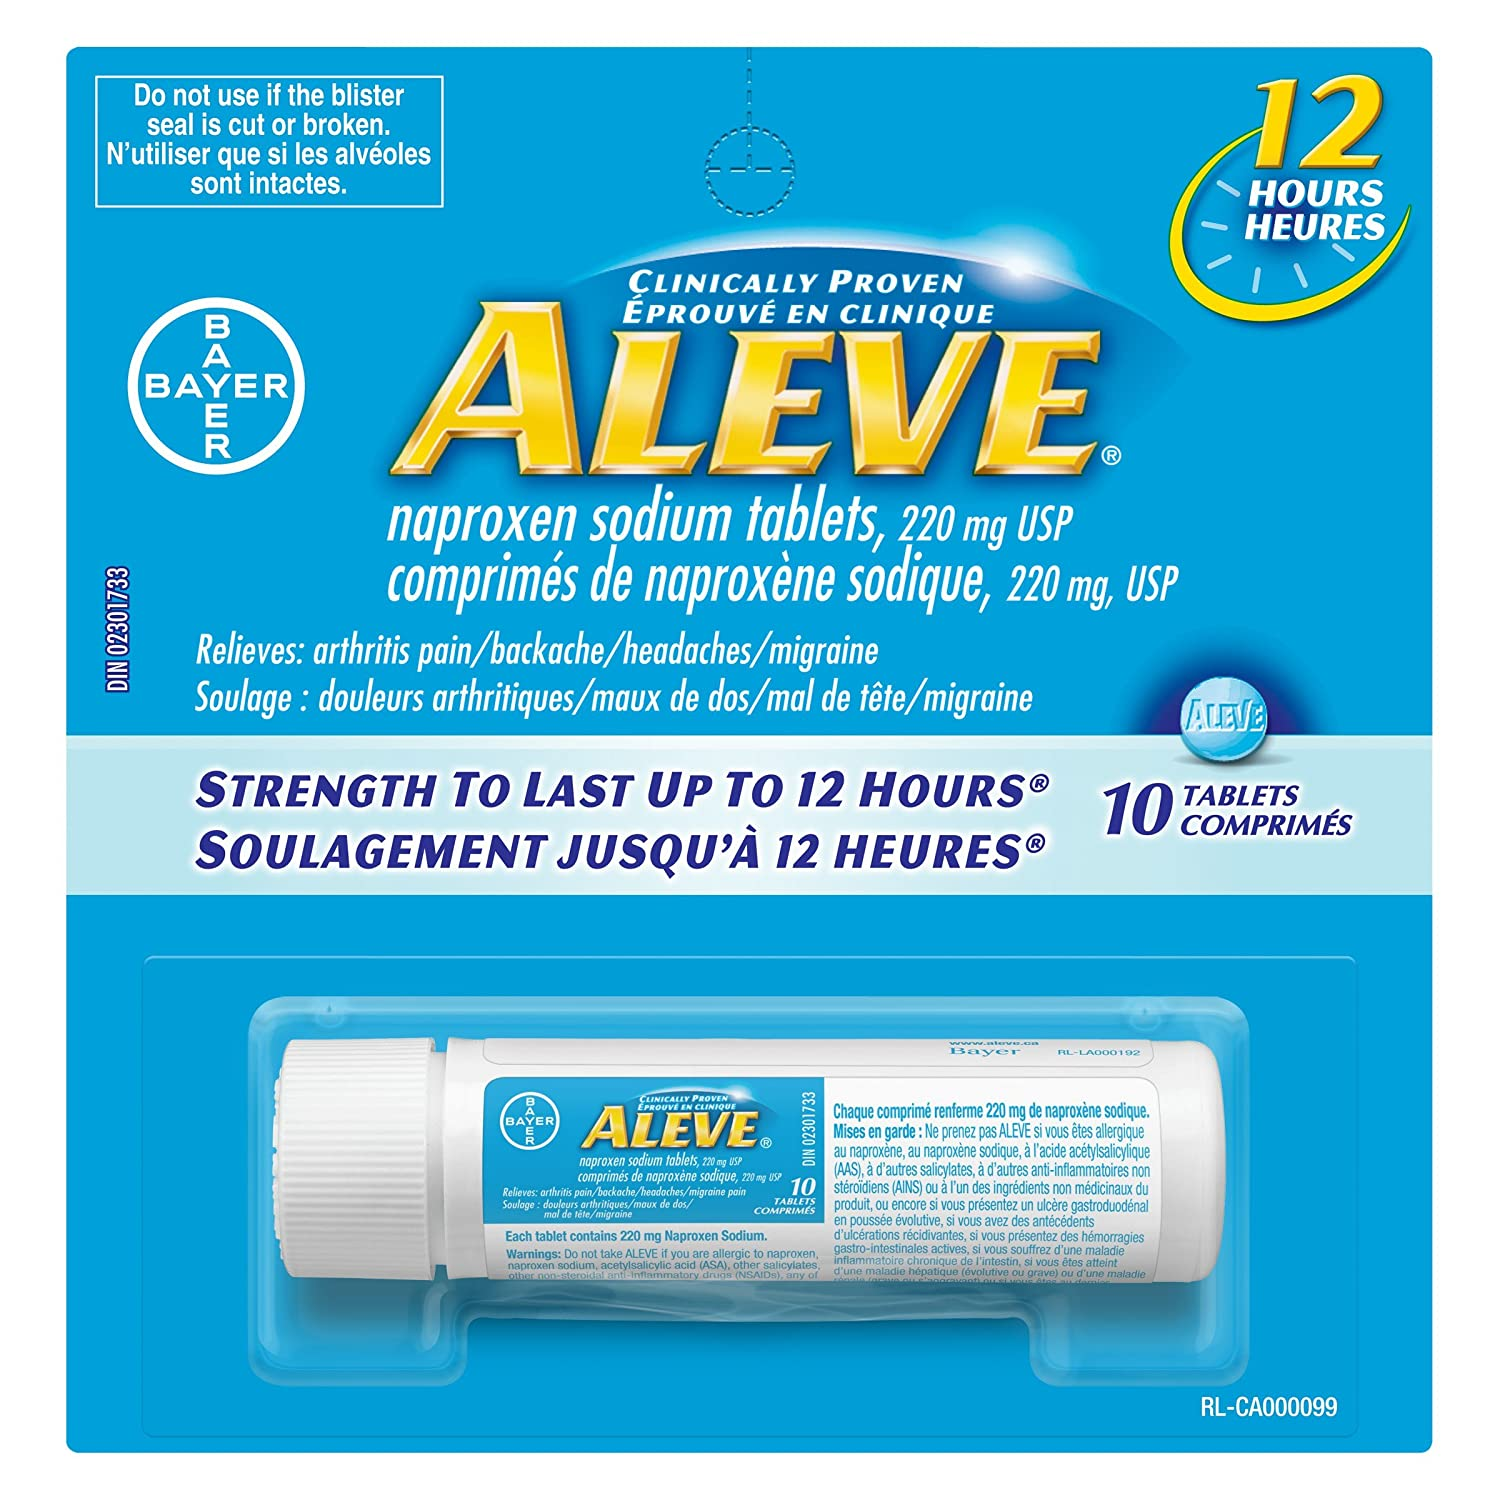 Bayer Aleve Naproxen Sodium Tablet 220 Mg Amazon Health